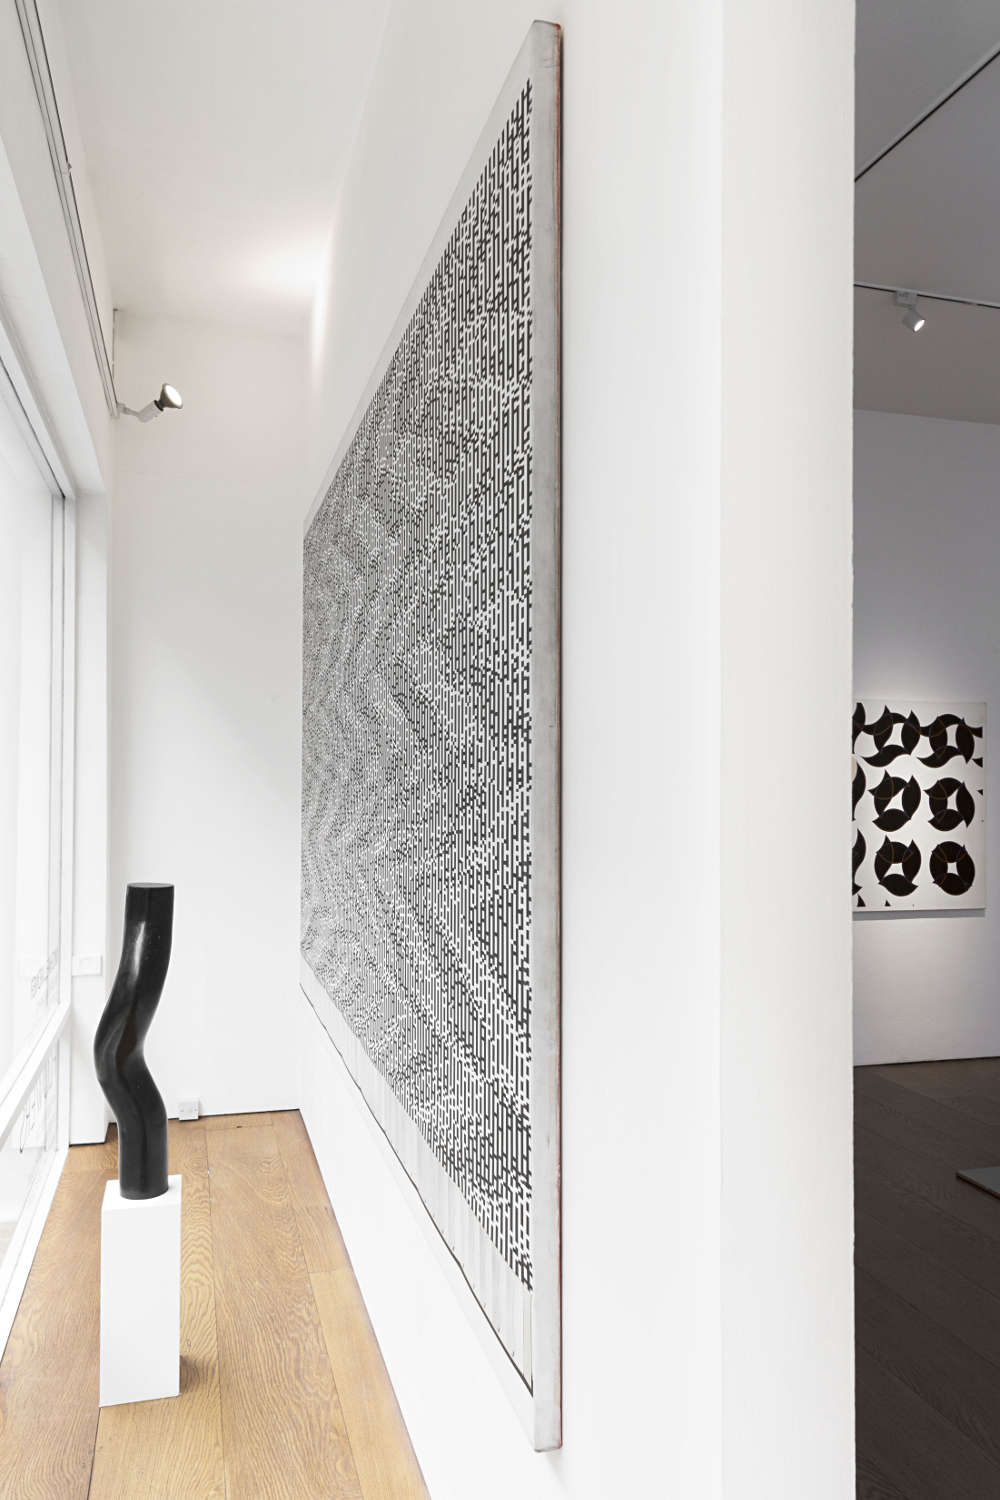 Michael Kidner In Black And White At Flowers Gallery